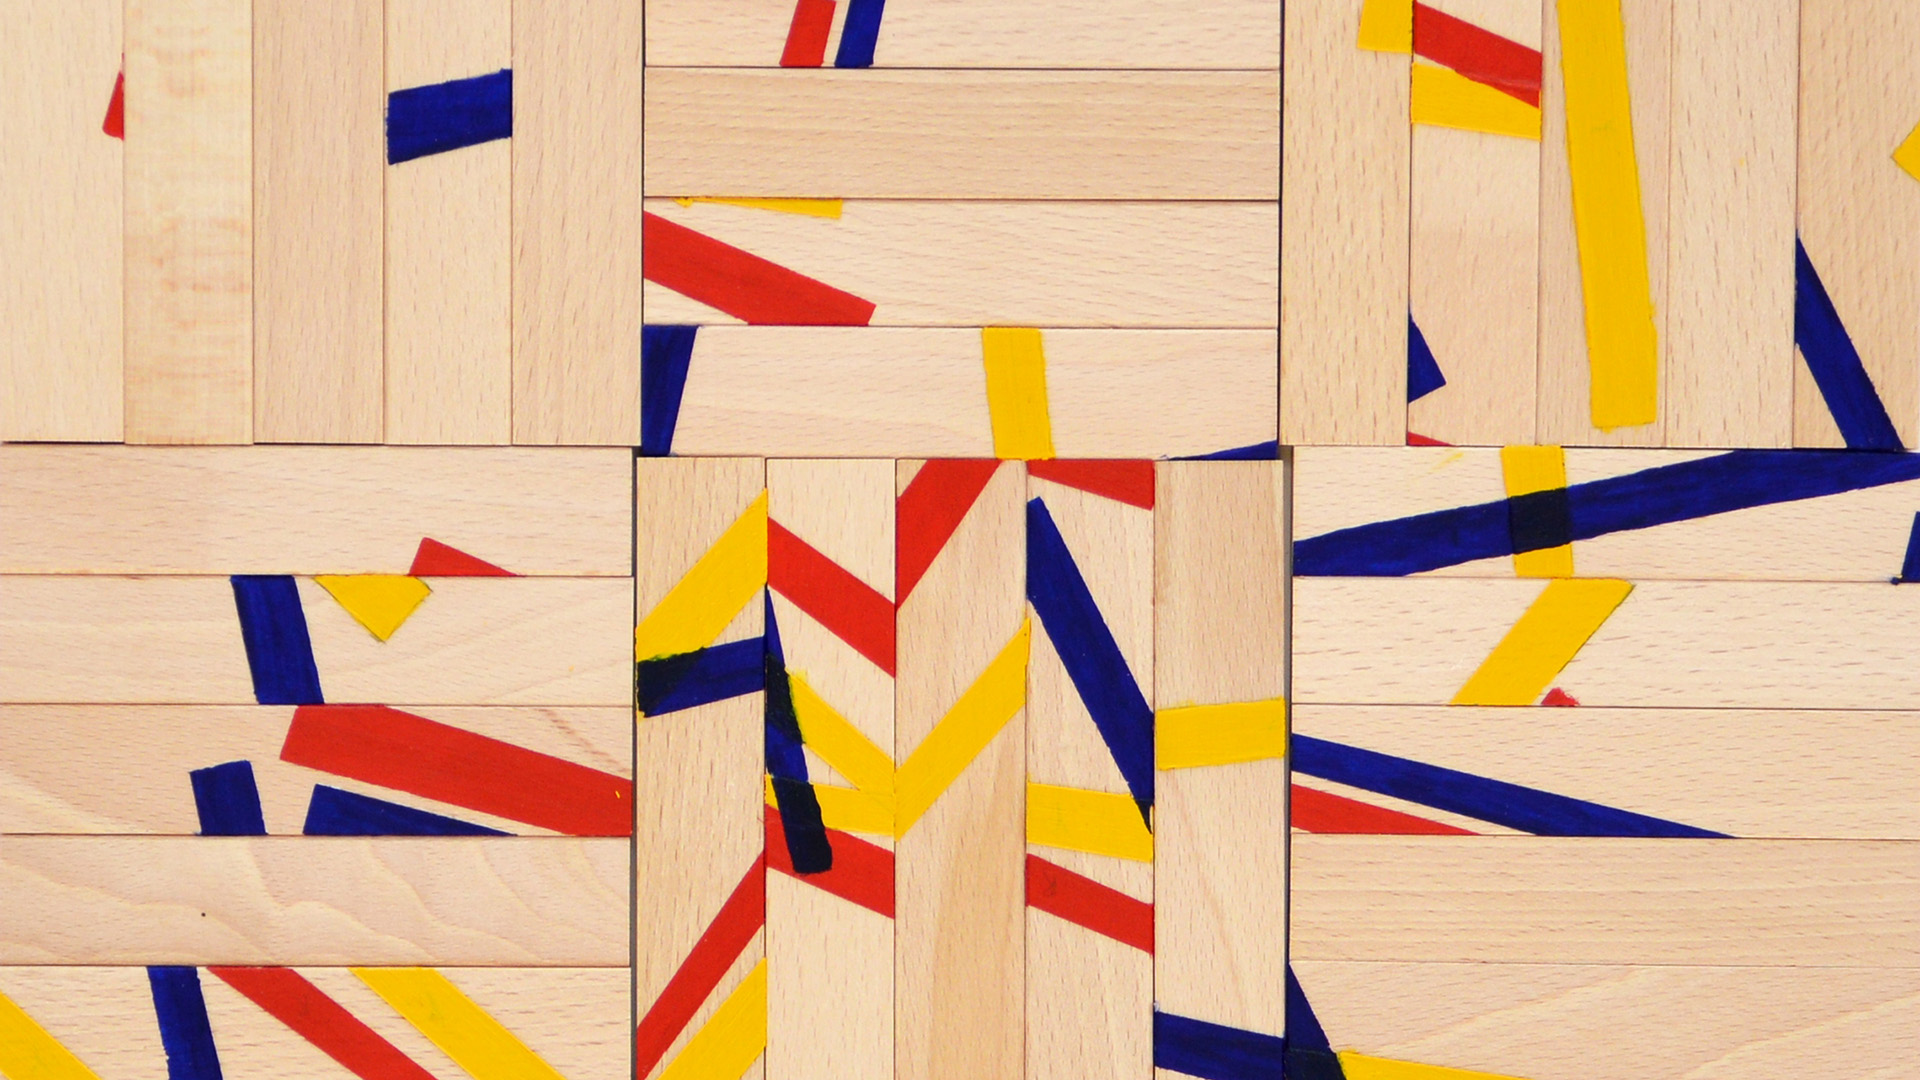 Arthur Wong 'Resemble - Fragments and Order' March 2015 wood, acrylic paint, MDF board 52 x 52 cm_main